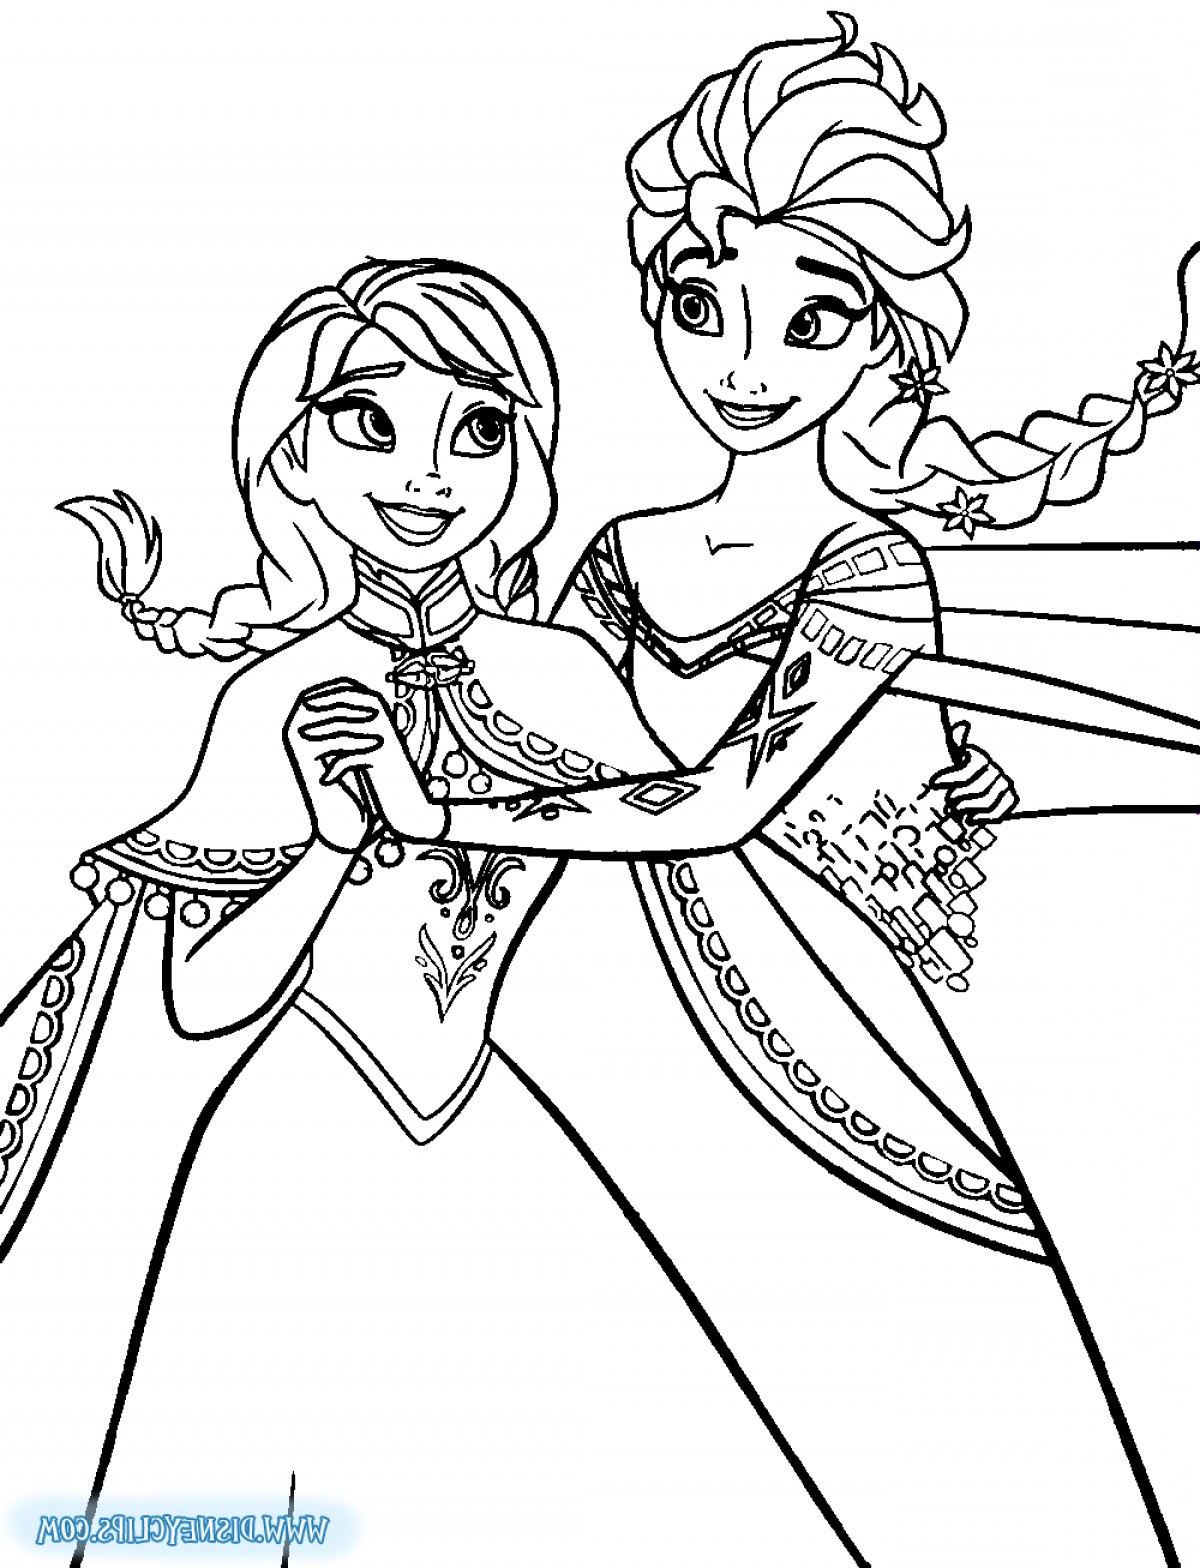 Crowning clipart frozen.